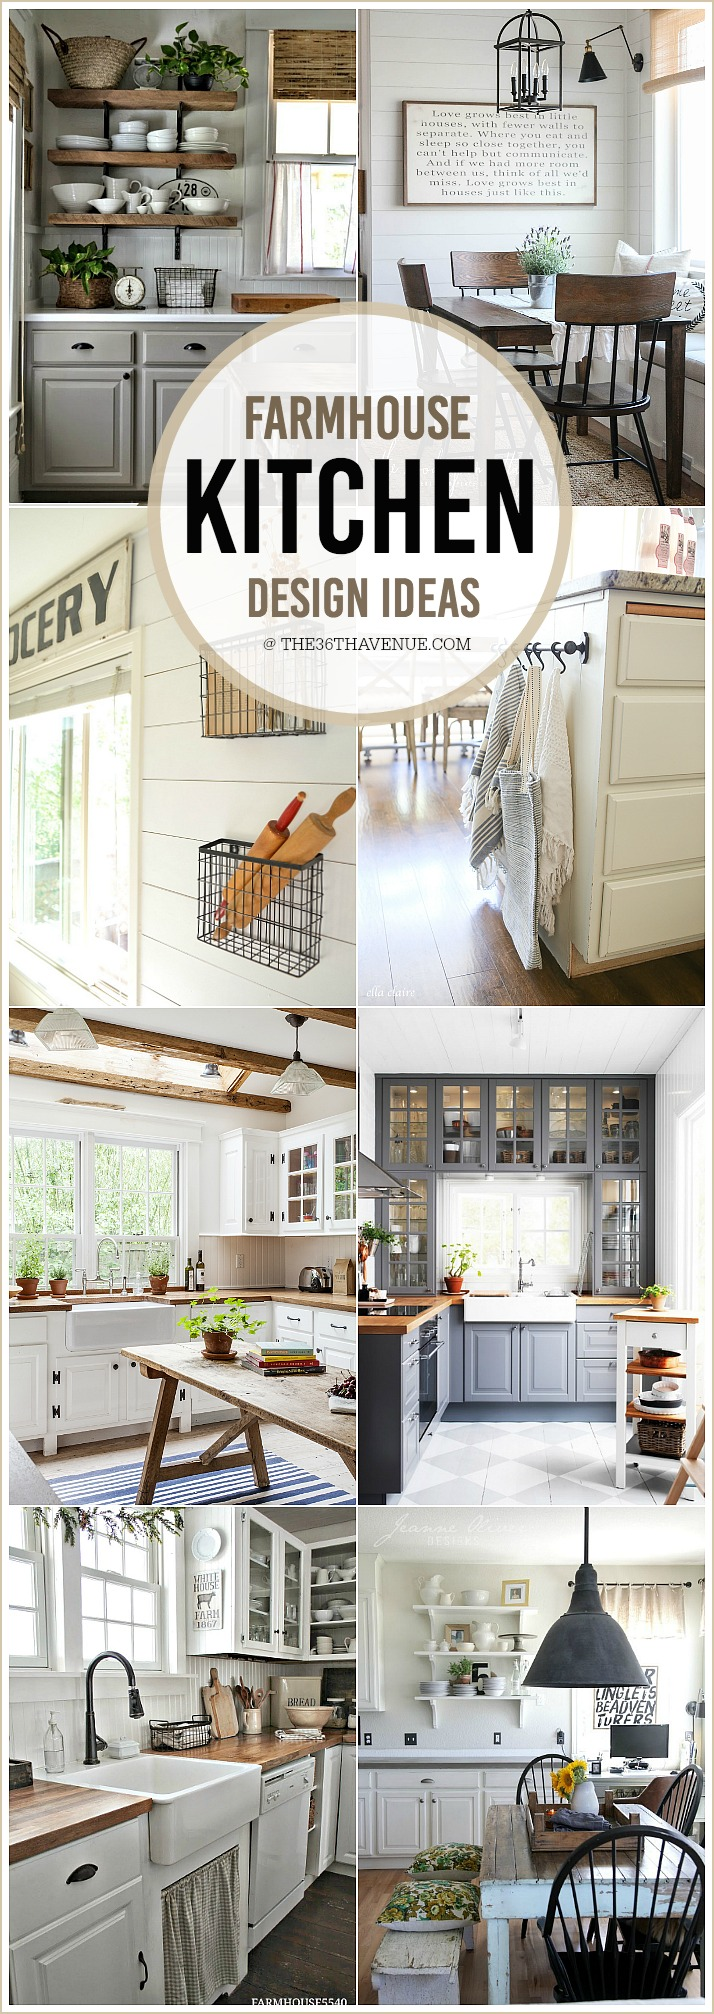 farmhouse-kitchen-decor-ideas-the36thavenue-com